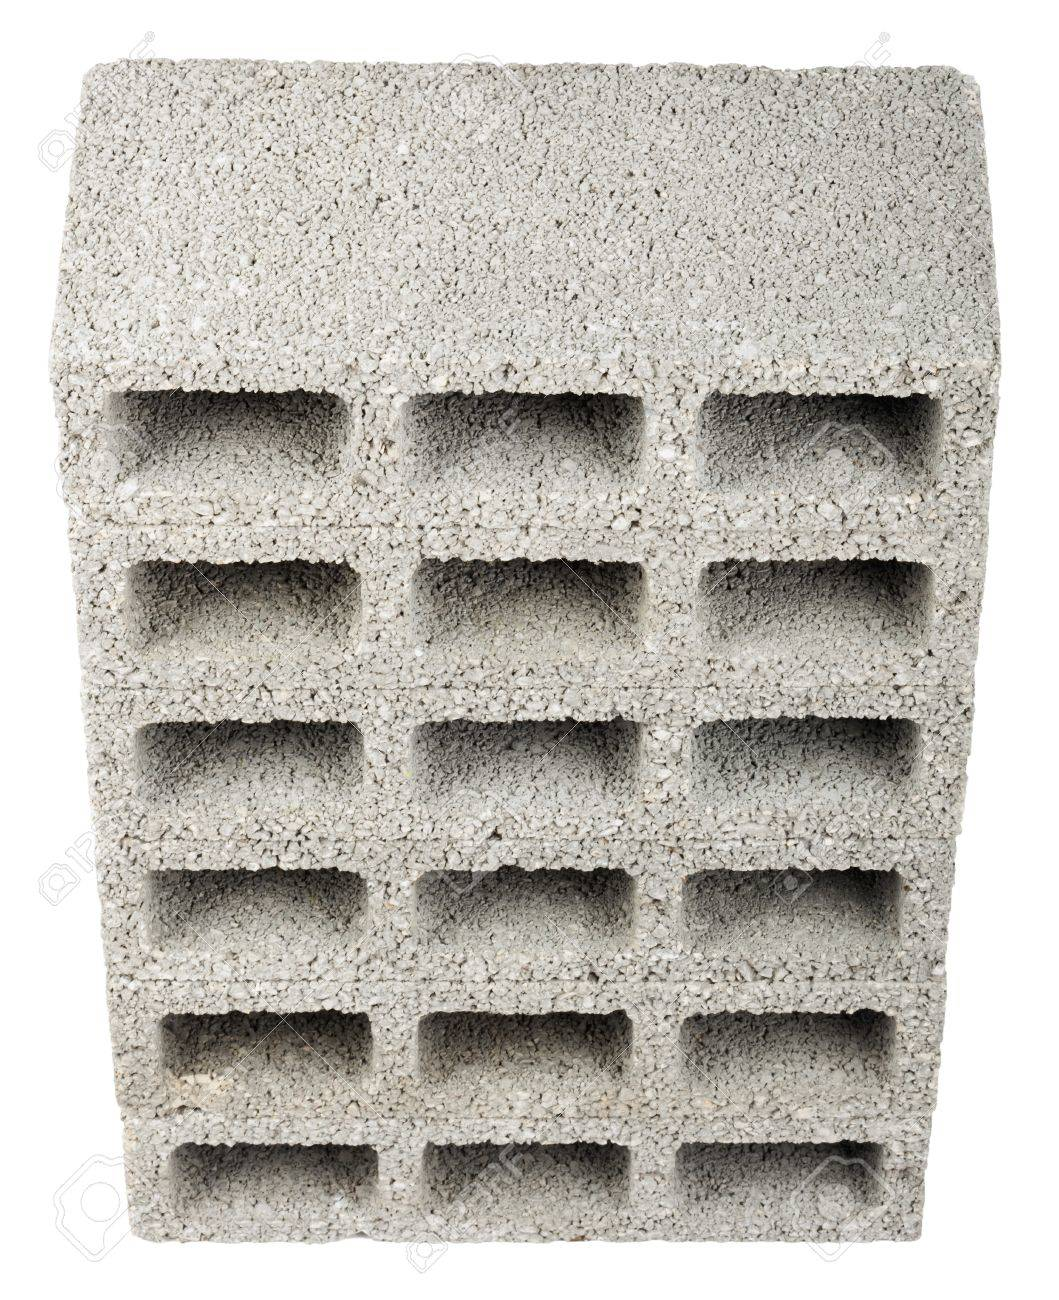 4fbb0851ee7a7 High angle view of six gray concrete construction blocks (a.k.a. cinder  block, breeze block, cement block, foundation block, besser block; ...